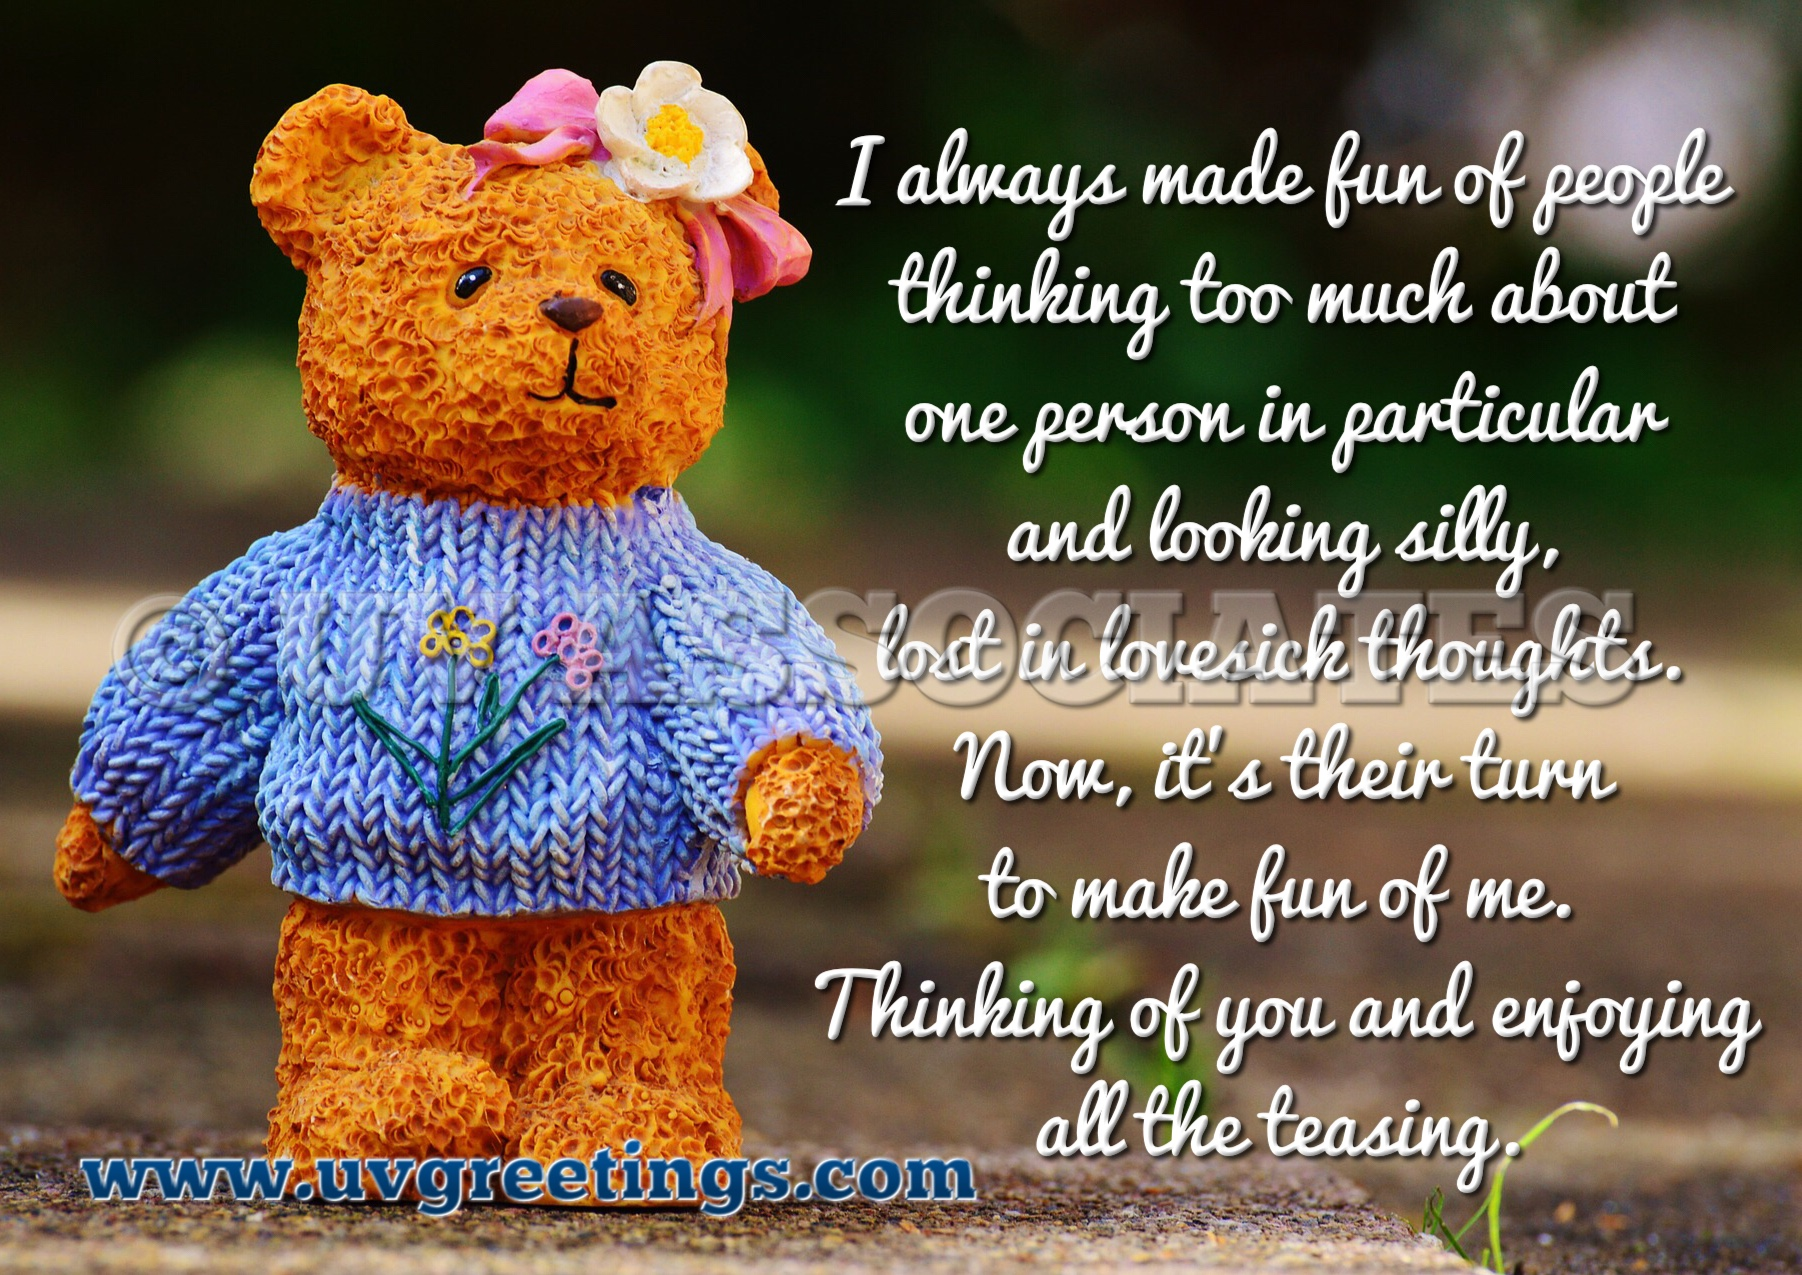 Thinking of you eCard - Cute Teddy - 'Lovesick look' making everyone tease